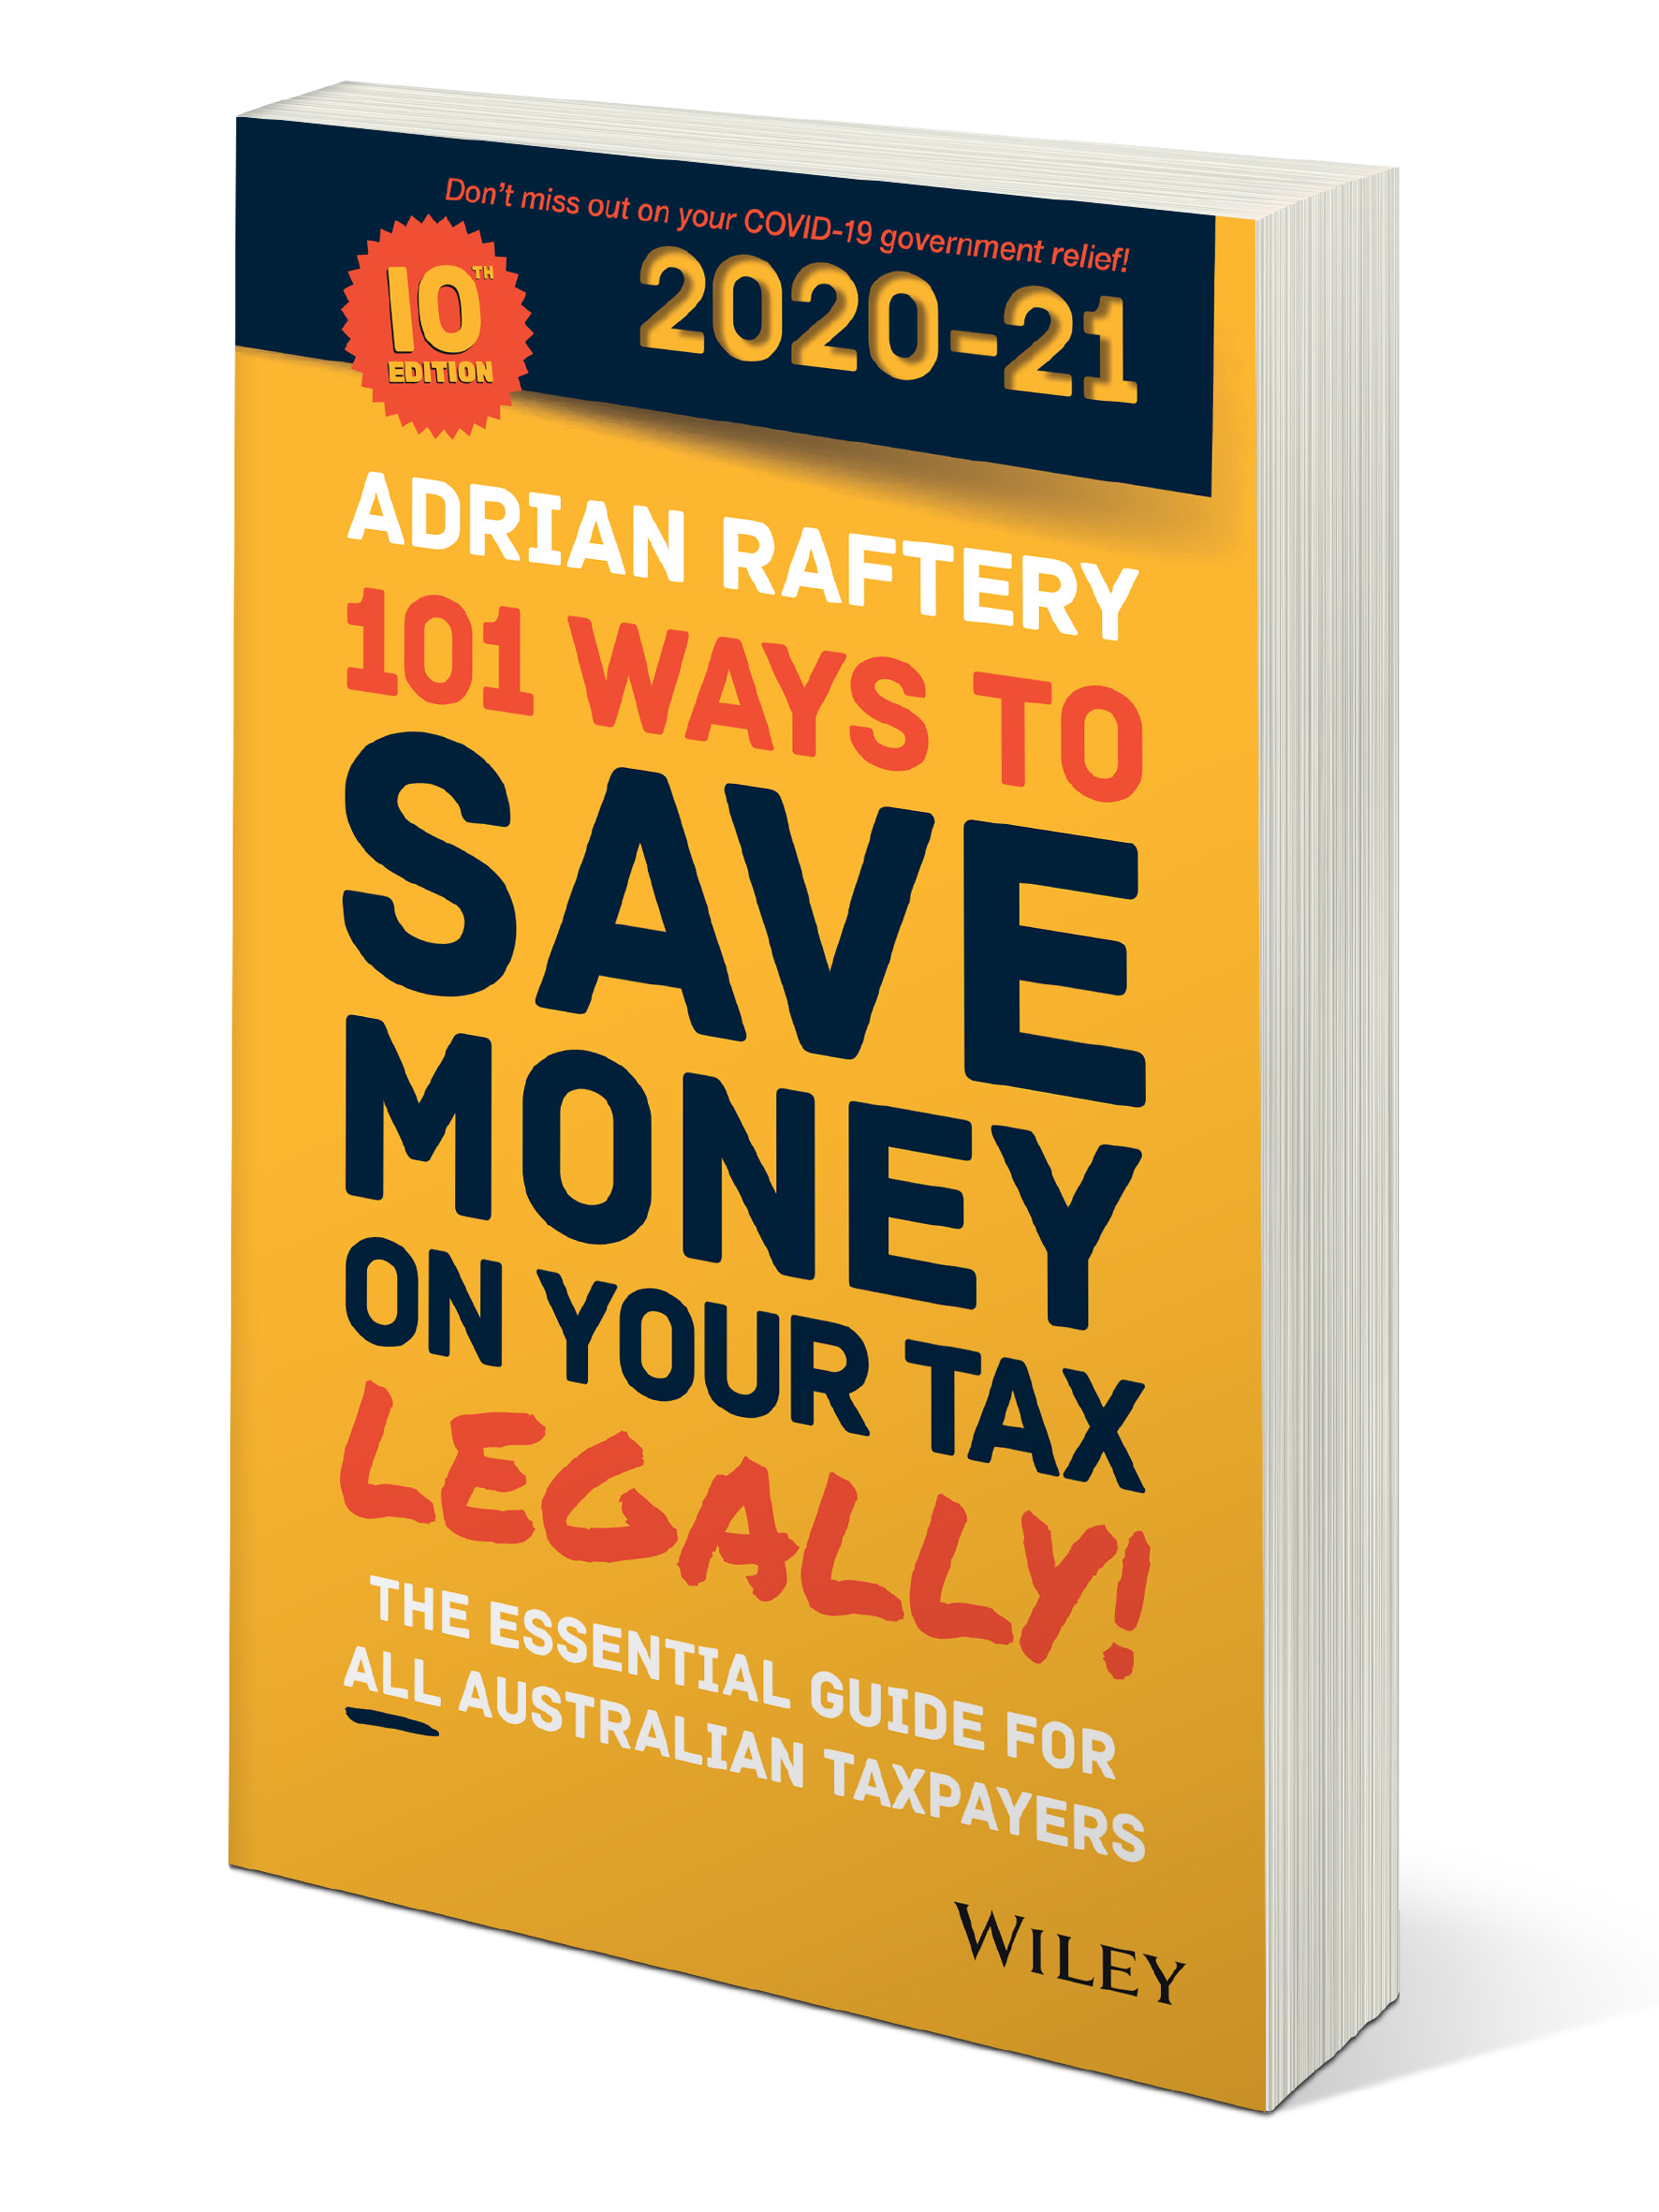 TOP TEN TAX TIPS FOR RENTAL PROPERTY INVESTORS 2019/2020